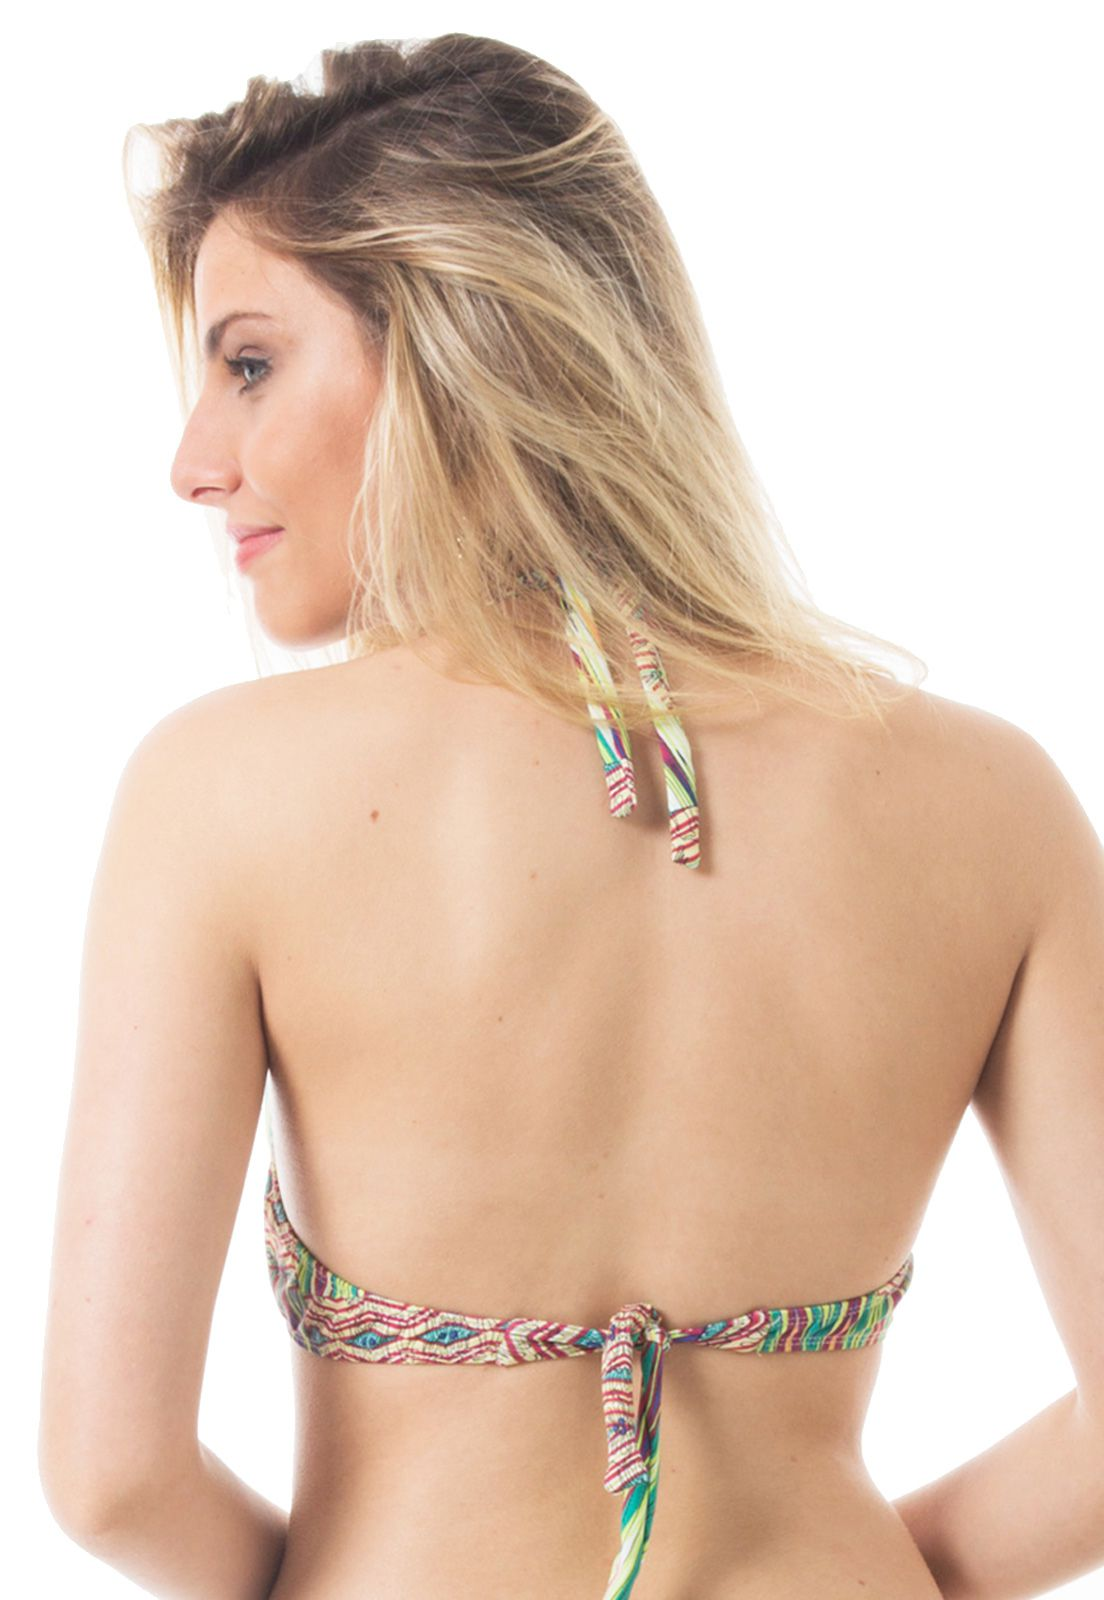 Biquíni Top Push-up Flavia Donadio Beachwear Tahiti -2 Multicolorido